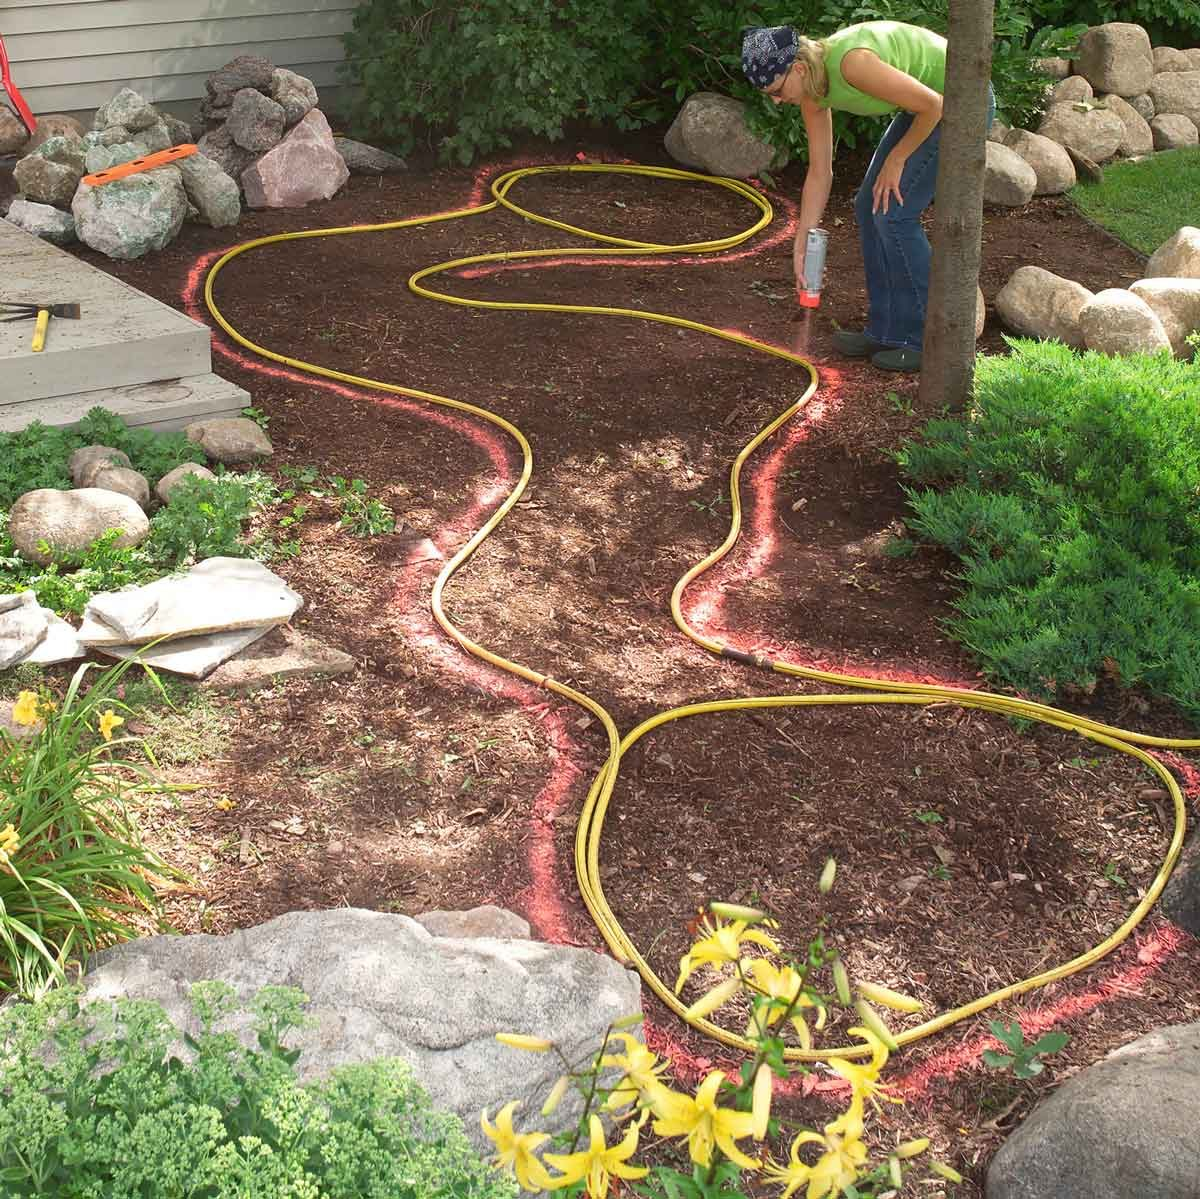 mark hole with hose and paint digging pond